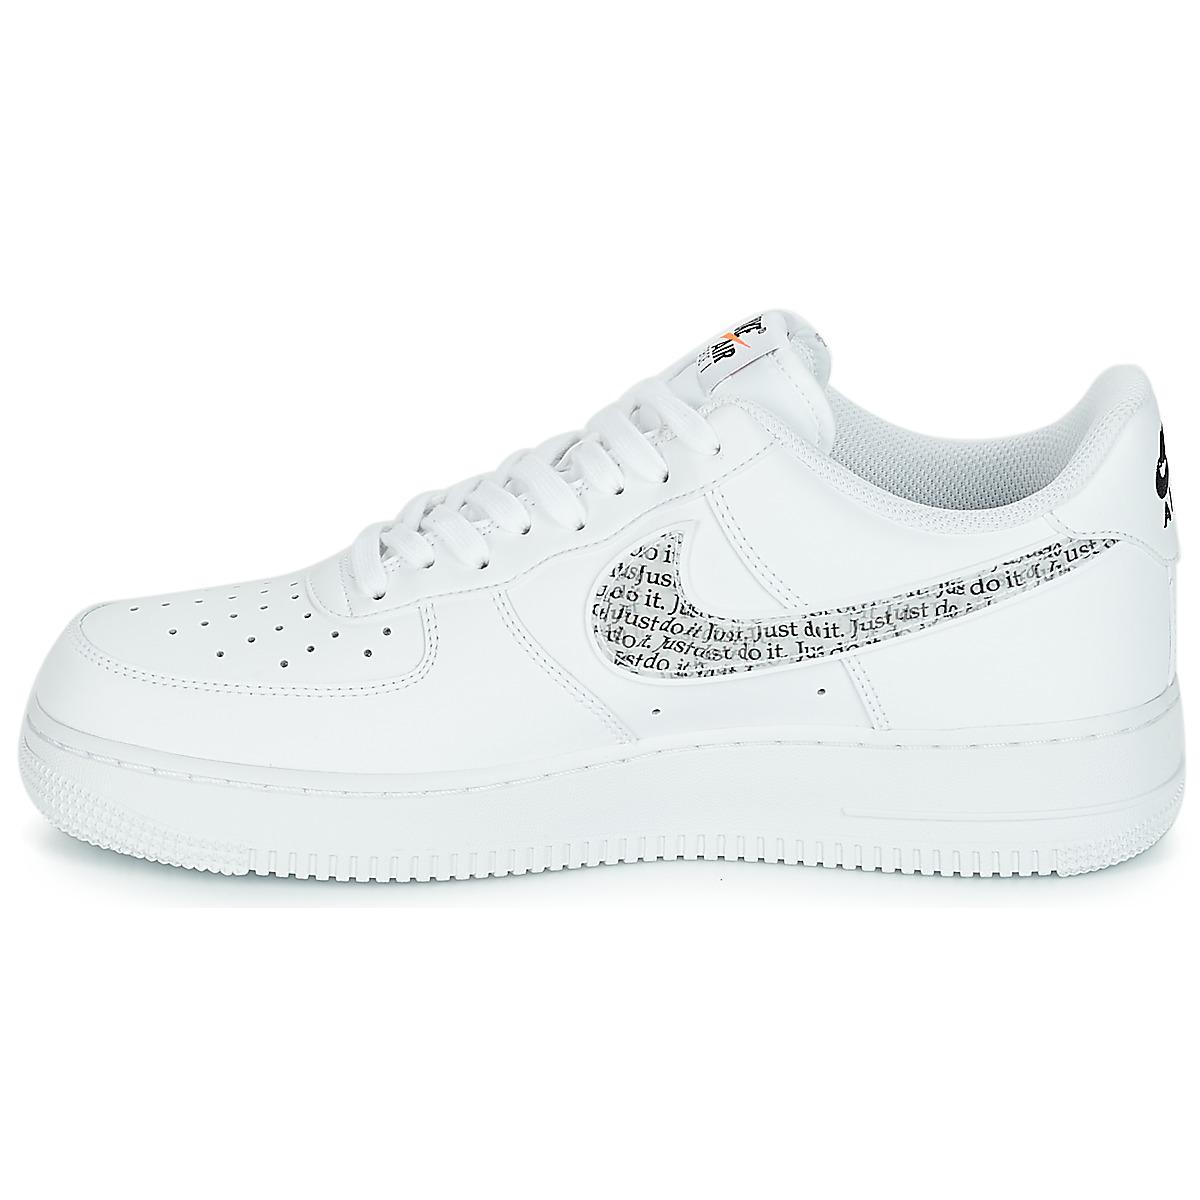 Coloris White Hommes Force Nike '07 Homme Do Just 1 Chaussures Pour Air It En Blanc Lv8 WHID29E